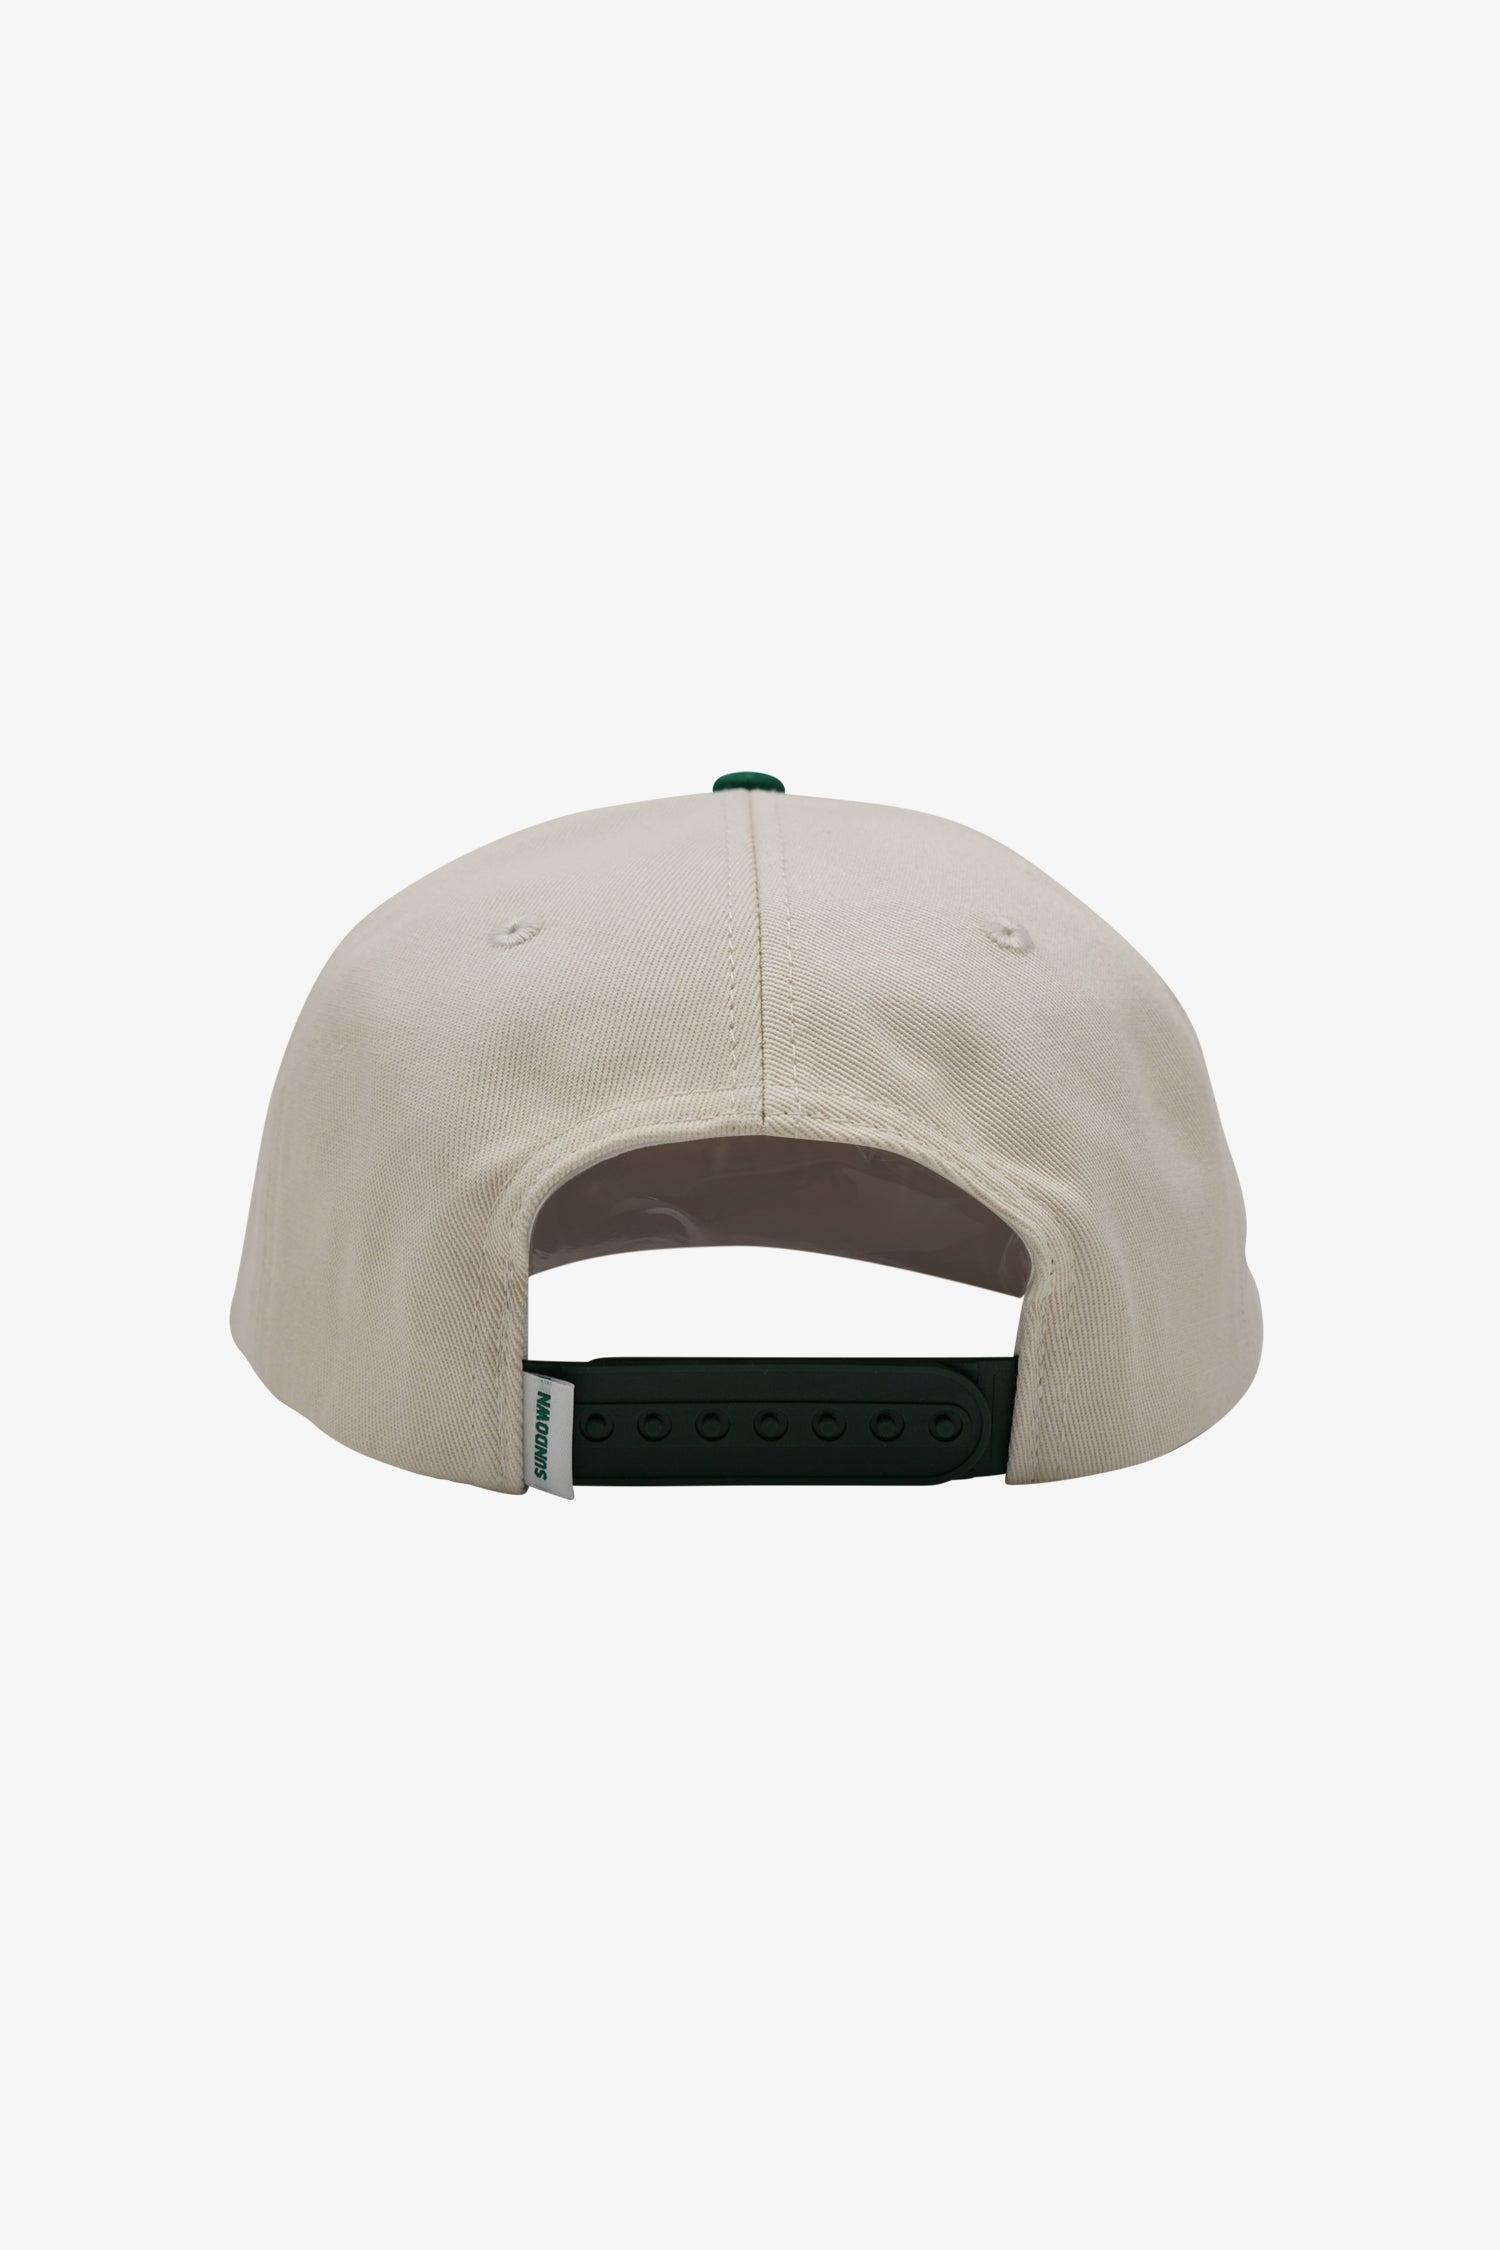 Selectshop FRAME - COME SUNDOWN Mosquito Cap Accessories Dubai